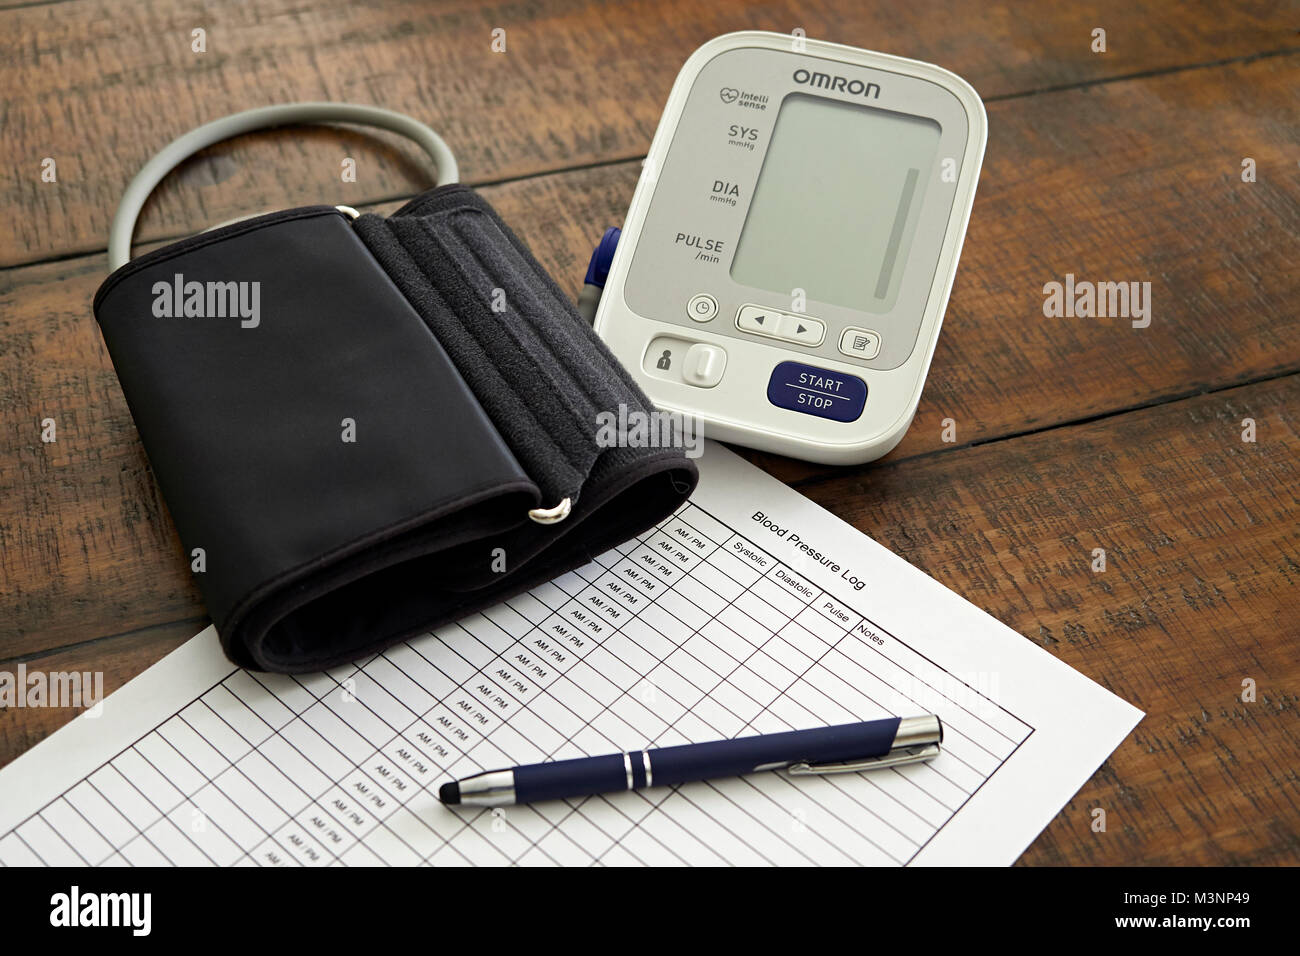 Sphygmomanometer or blood pressure monitor, cuff, and chart ready to monitor heart health.  Concept of healthy lifestyle. - Stock Image